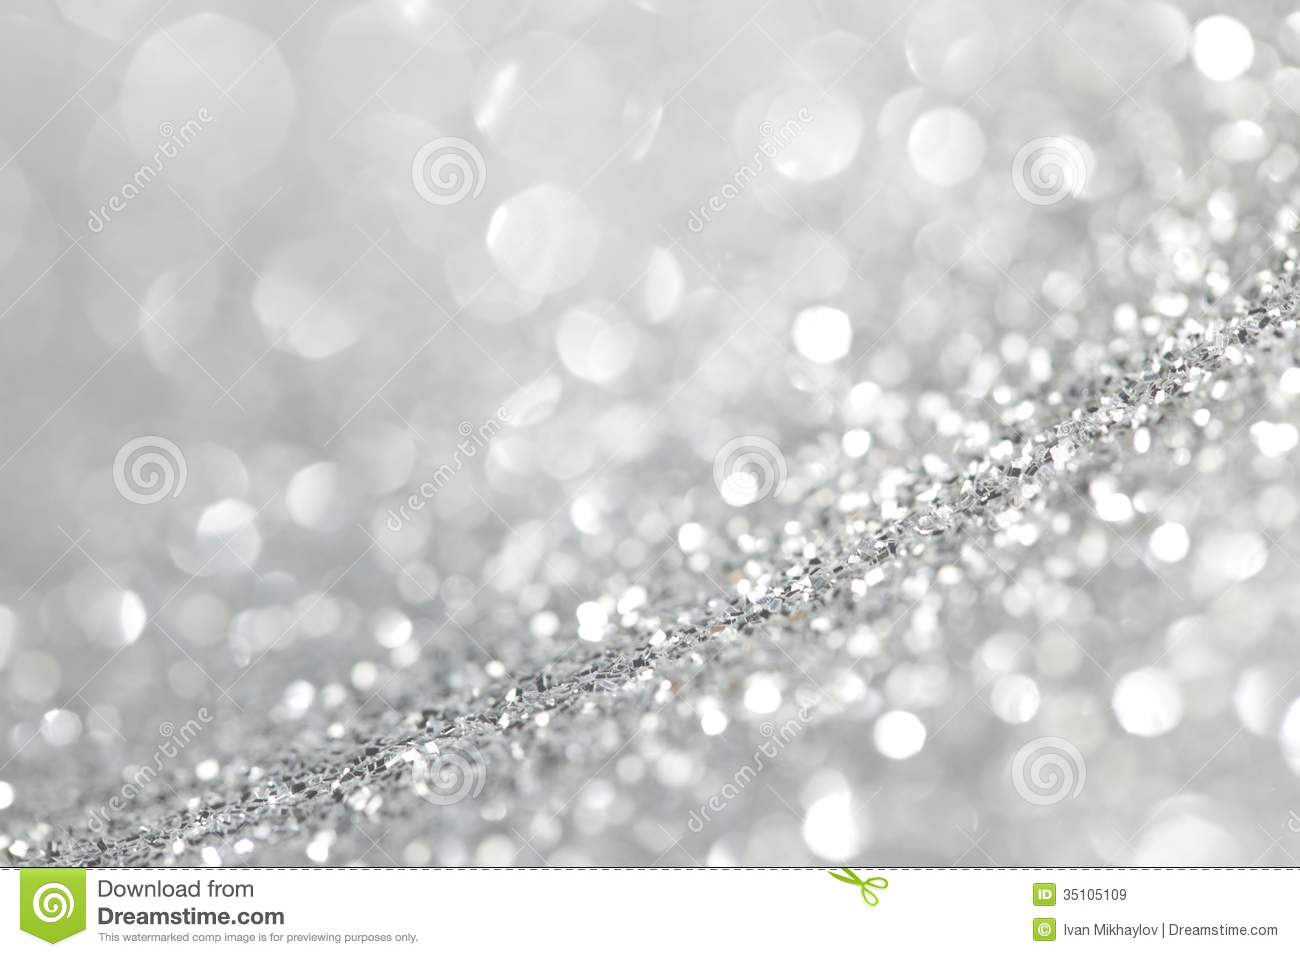 Abstract Glitter Background Stock Image - Image of celebration 9c320184efbd